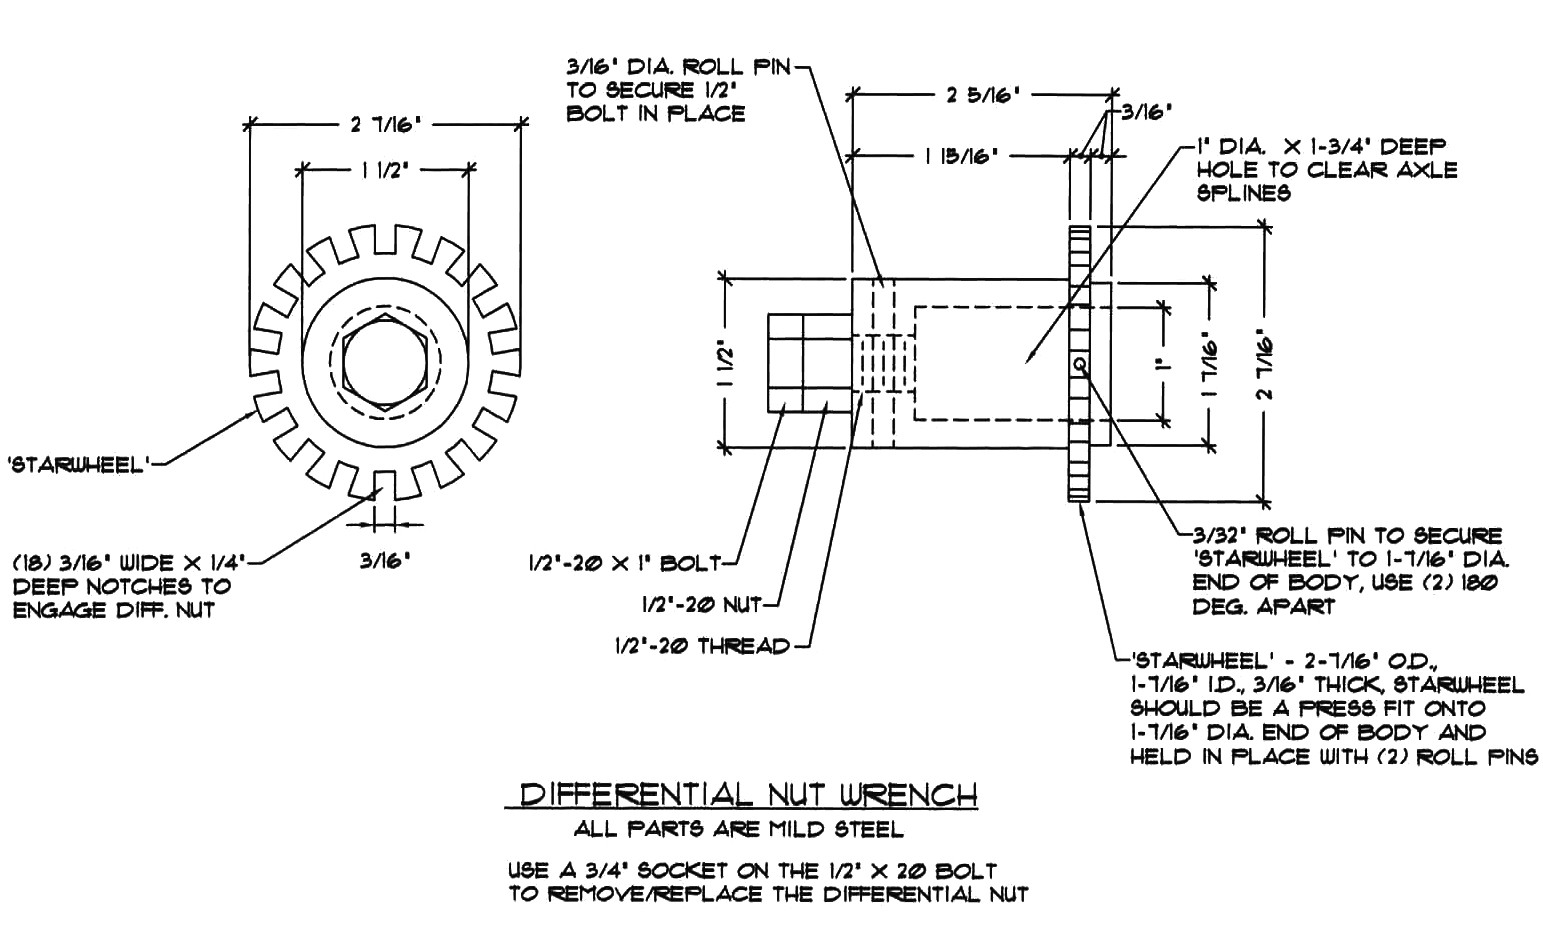 lotus europa master documentation menu differential nut wrench drawing